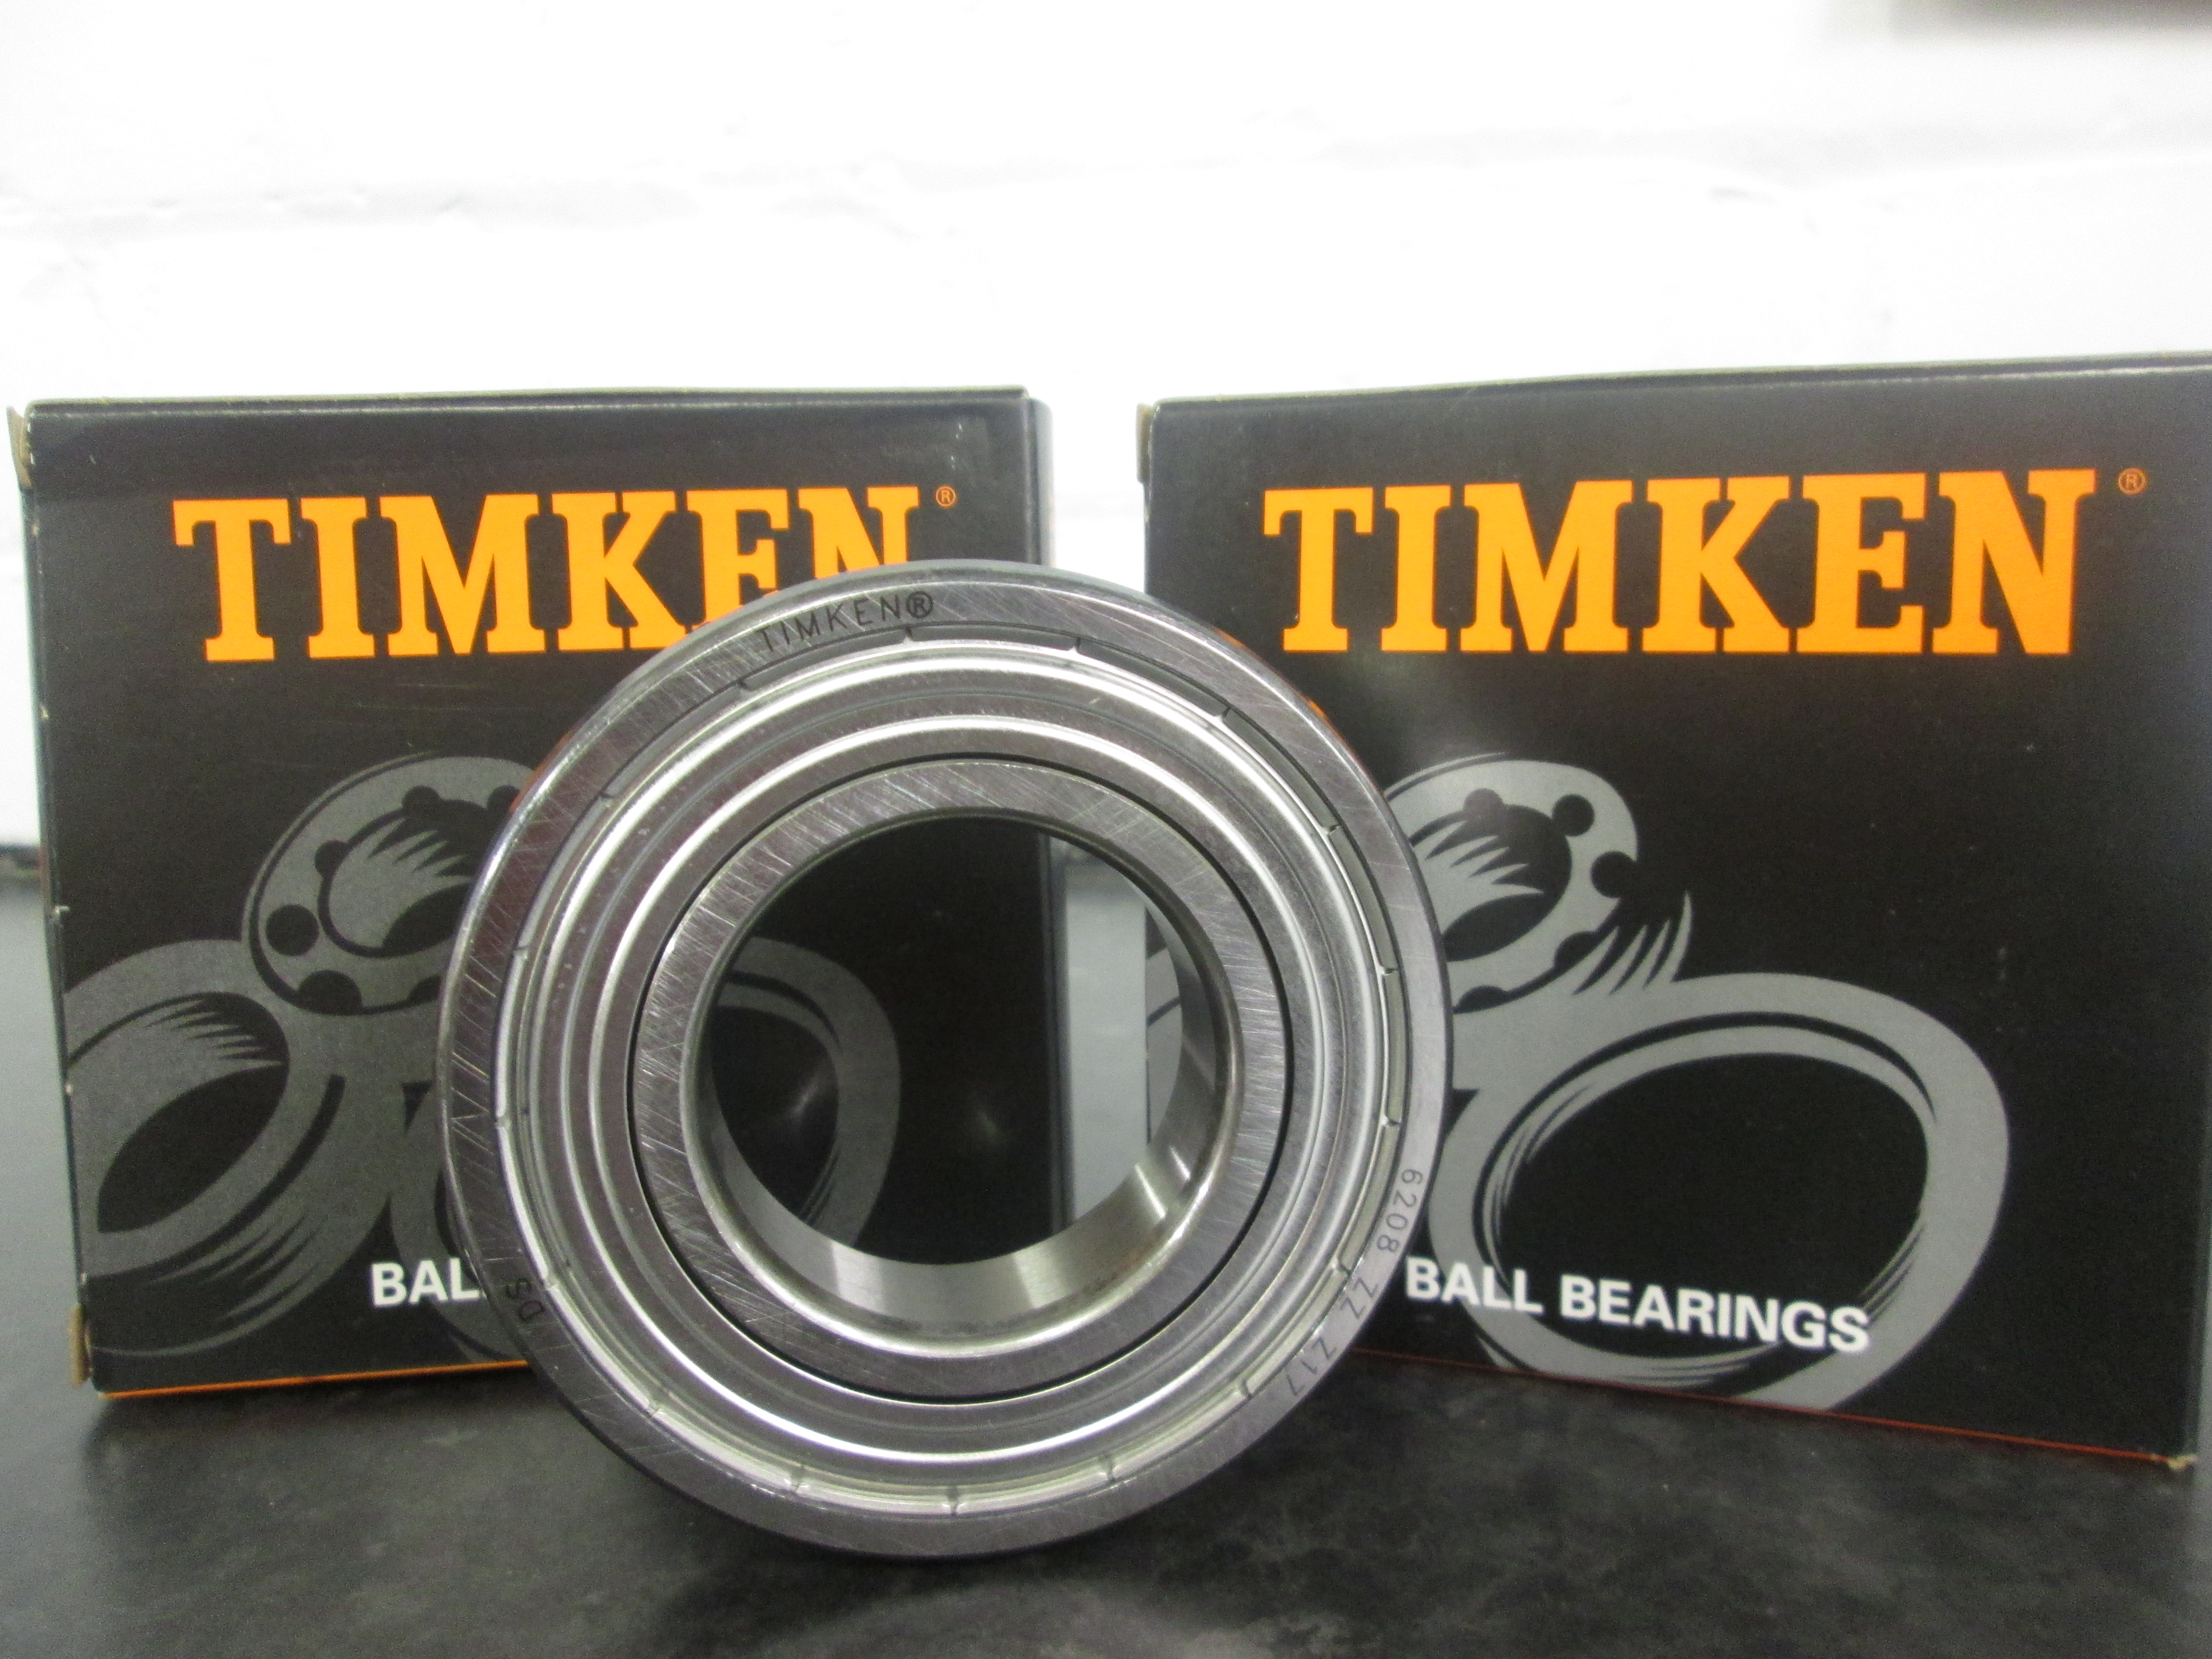 6200 - 6217 2Z (Bearings with Metal Shields) C3 Clearance